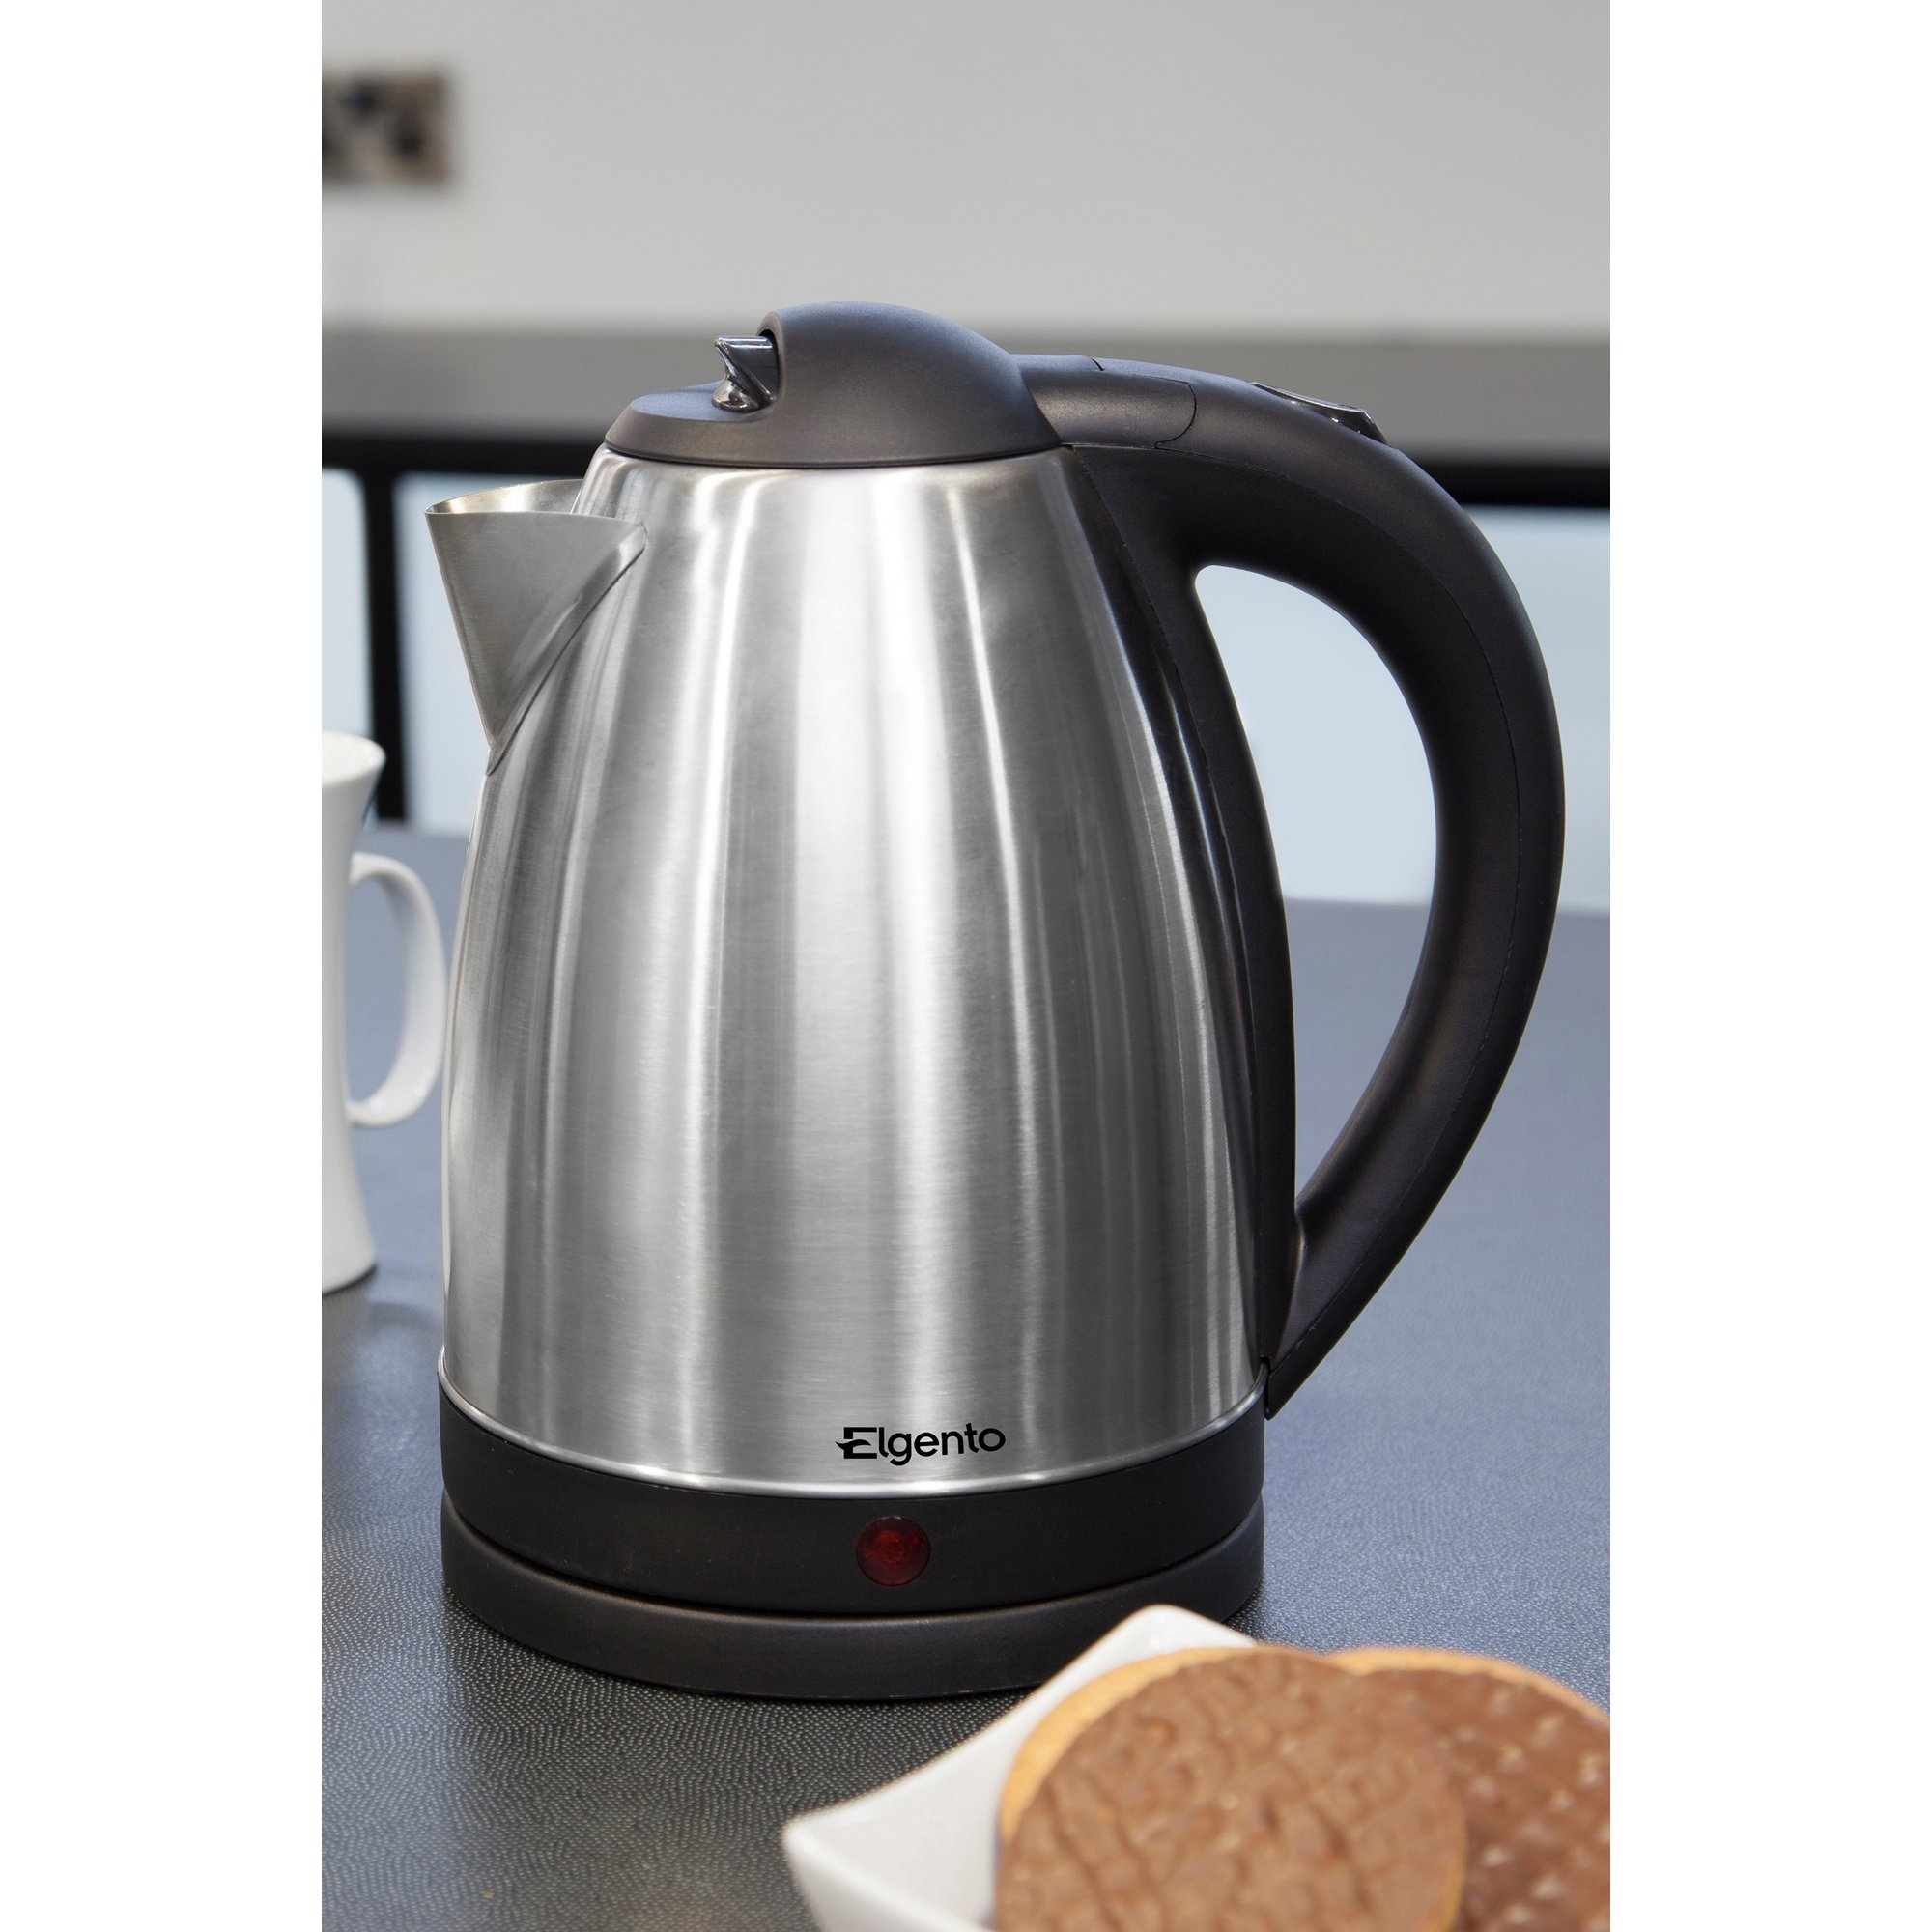 Image of Elgento 2200W Brushed Stainless Steel Kettle